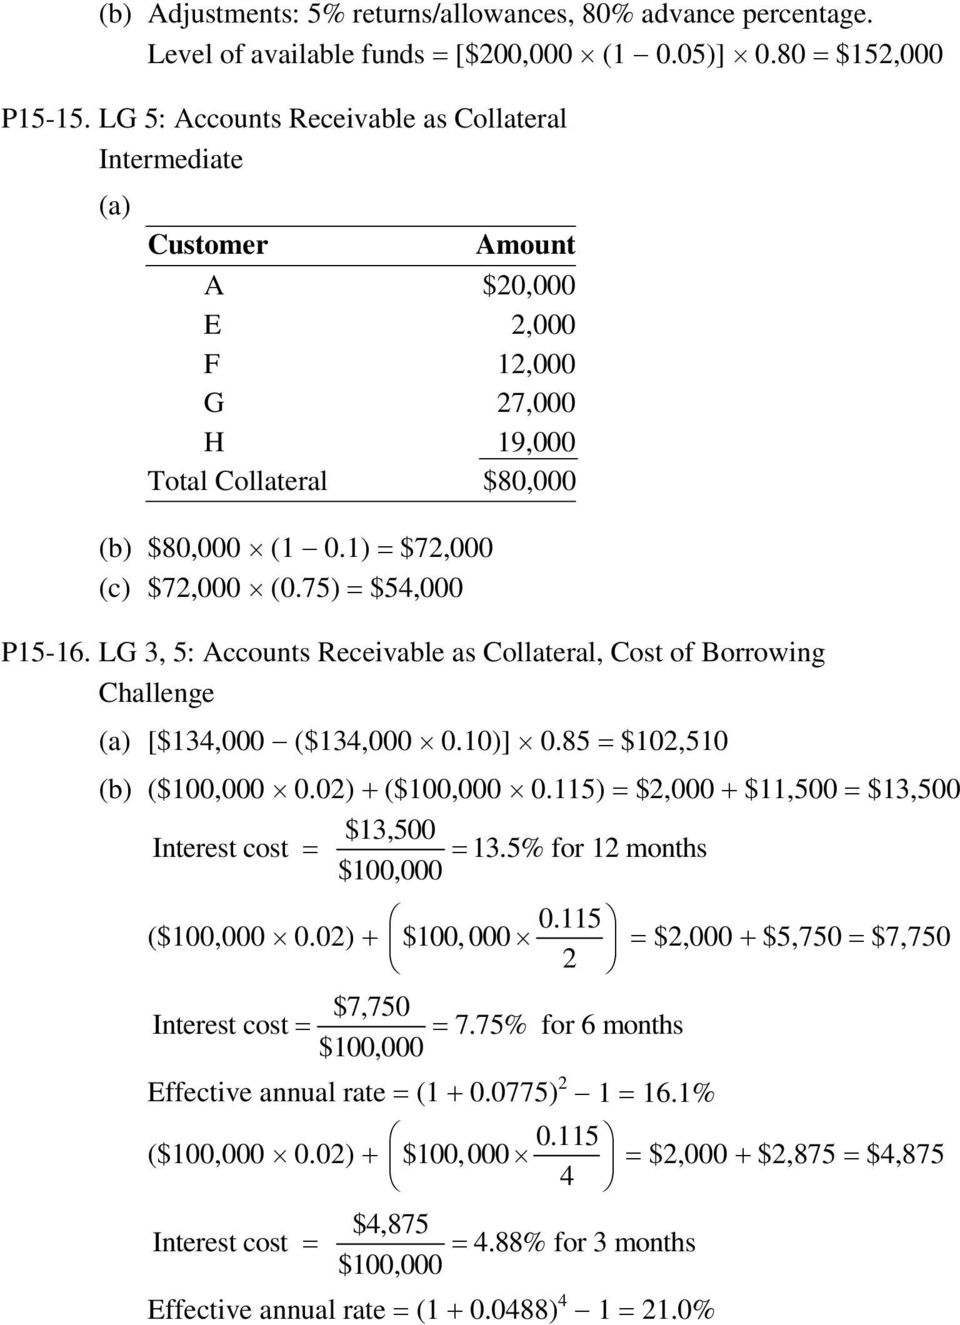 LG 3, 5: Accounts Receivable as Collateral, Cost of Borrowing Challenge [$134,000 ($134,000 0.10)] 0.85 = $102,510 (b) ($100,000 0.02) + ($100,000 0.